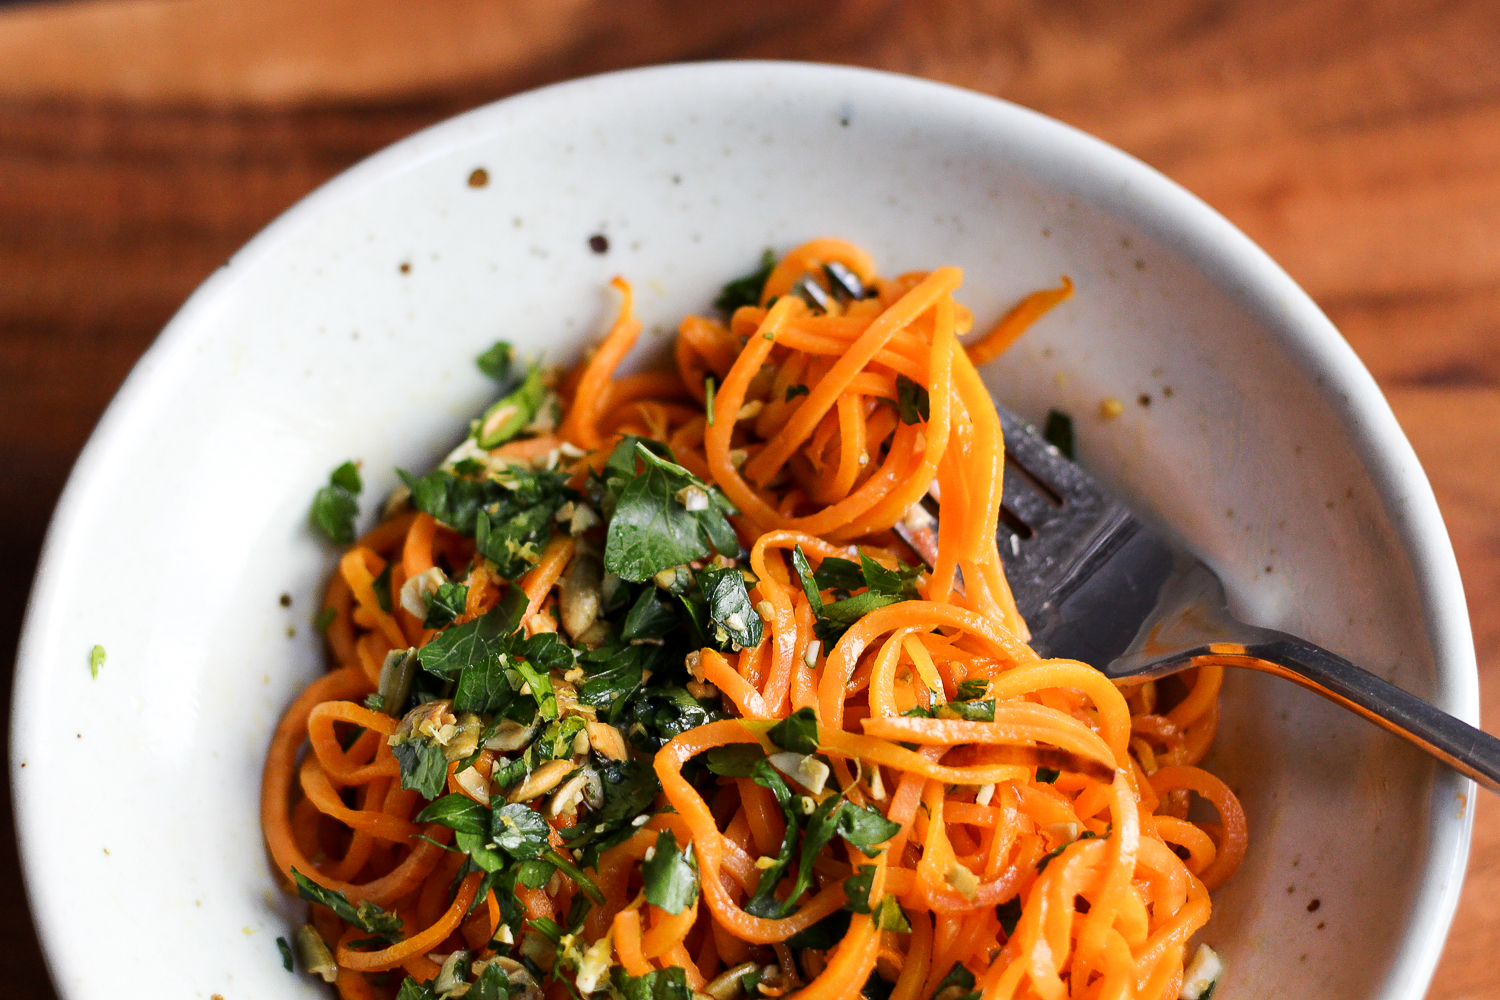 Paleo+Sweet+Potato+Noodles+with+Spicy+Pepita+Gremolata+Recipe+via+Worthy+Pause.jpg